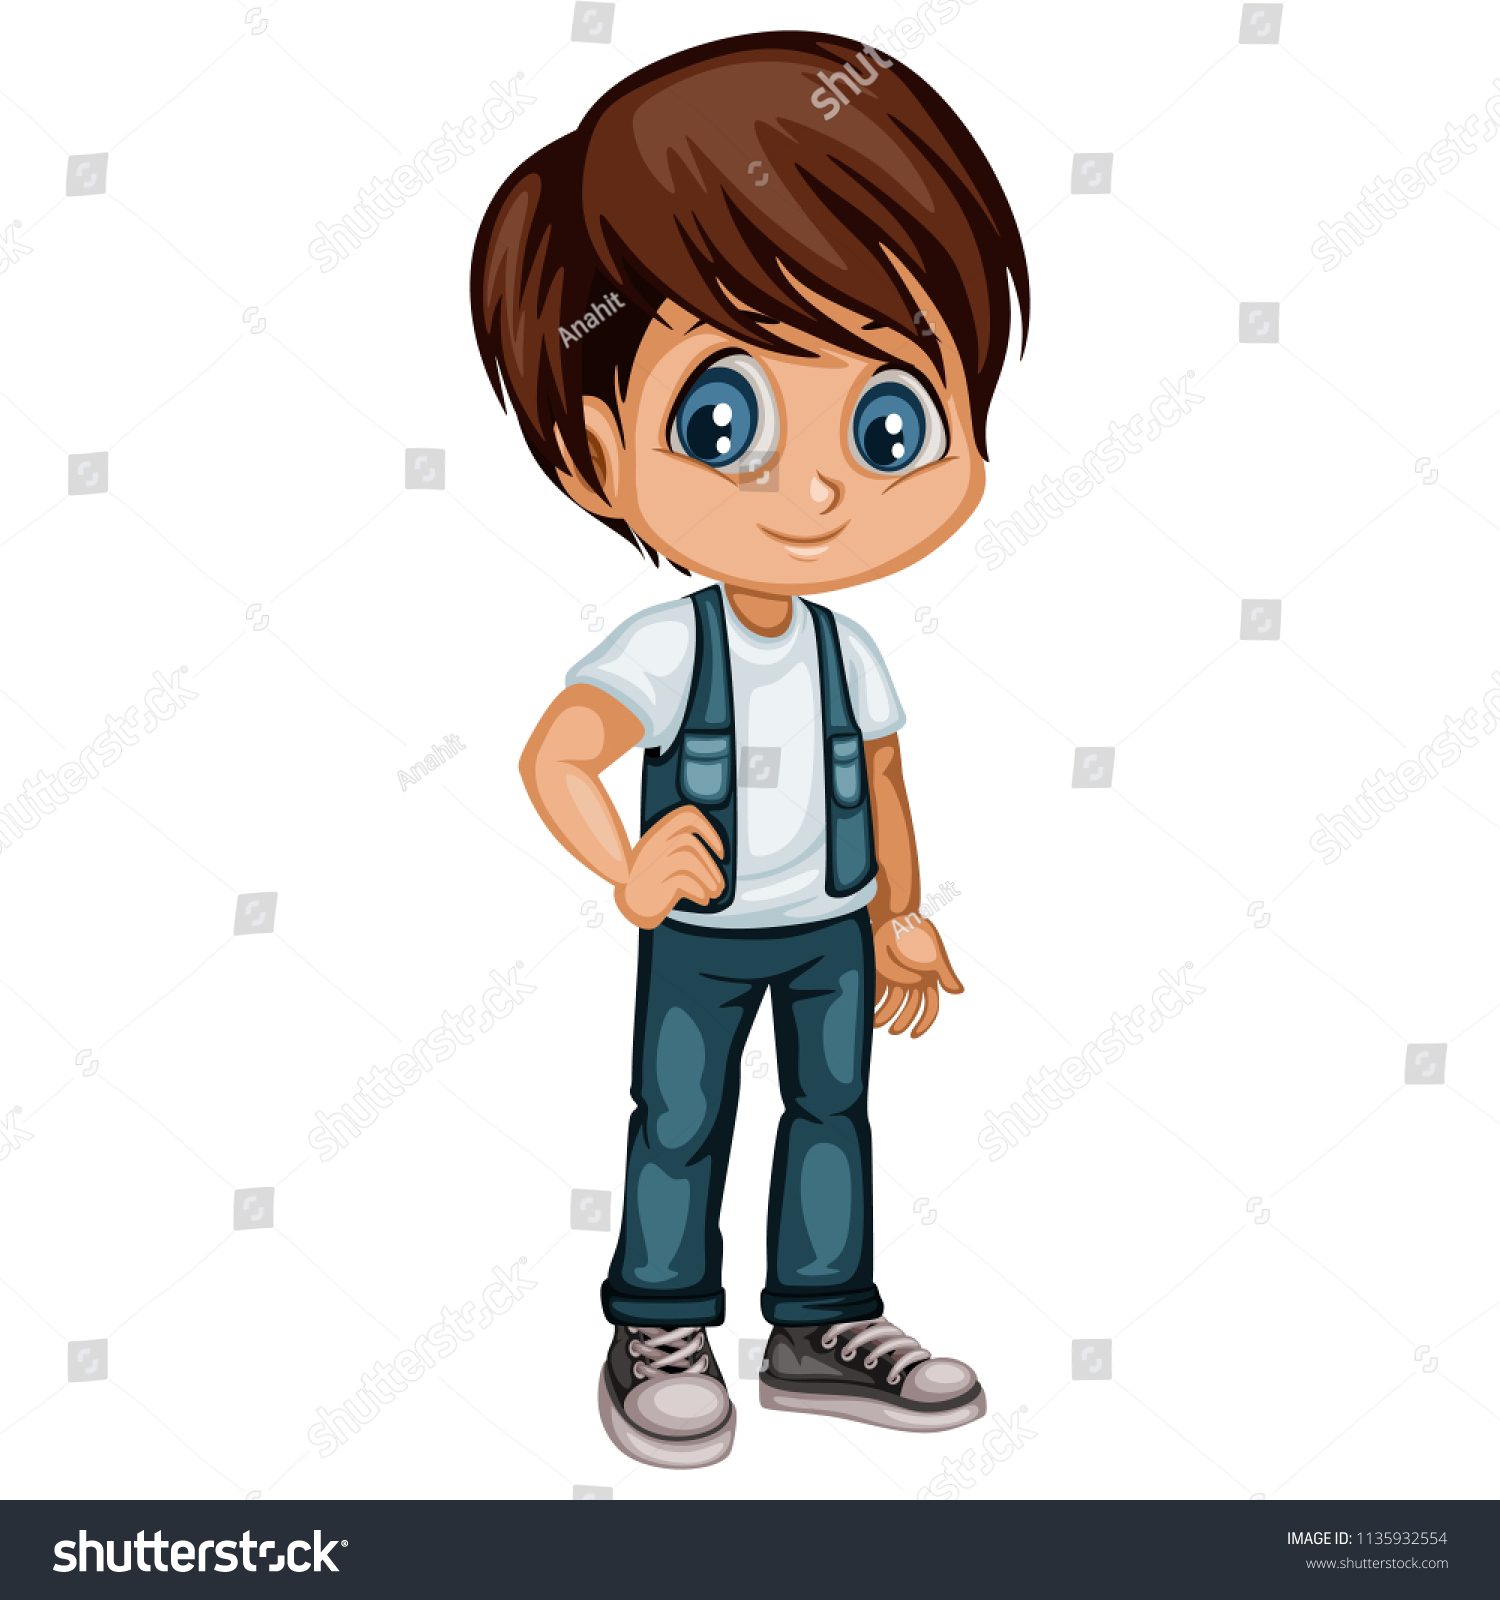 Cute cartoon boy character isolated on white background young boy illustration in casual clothes